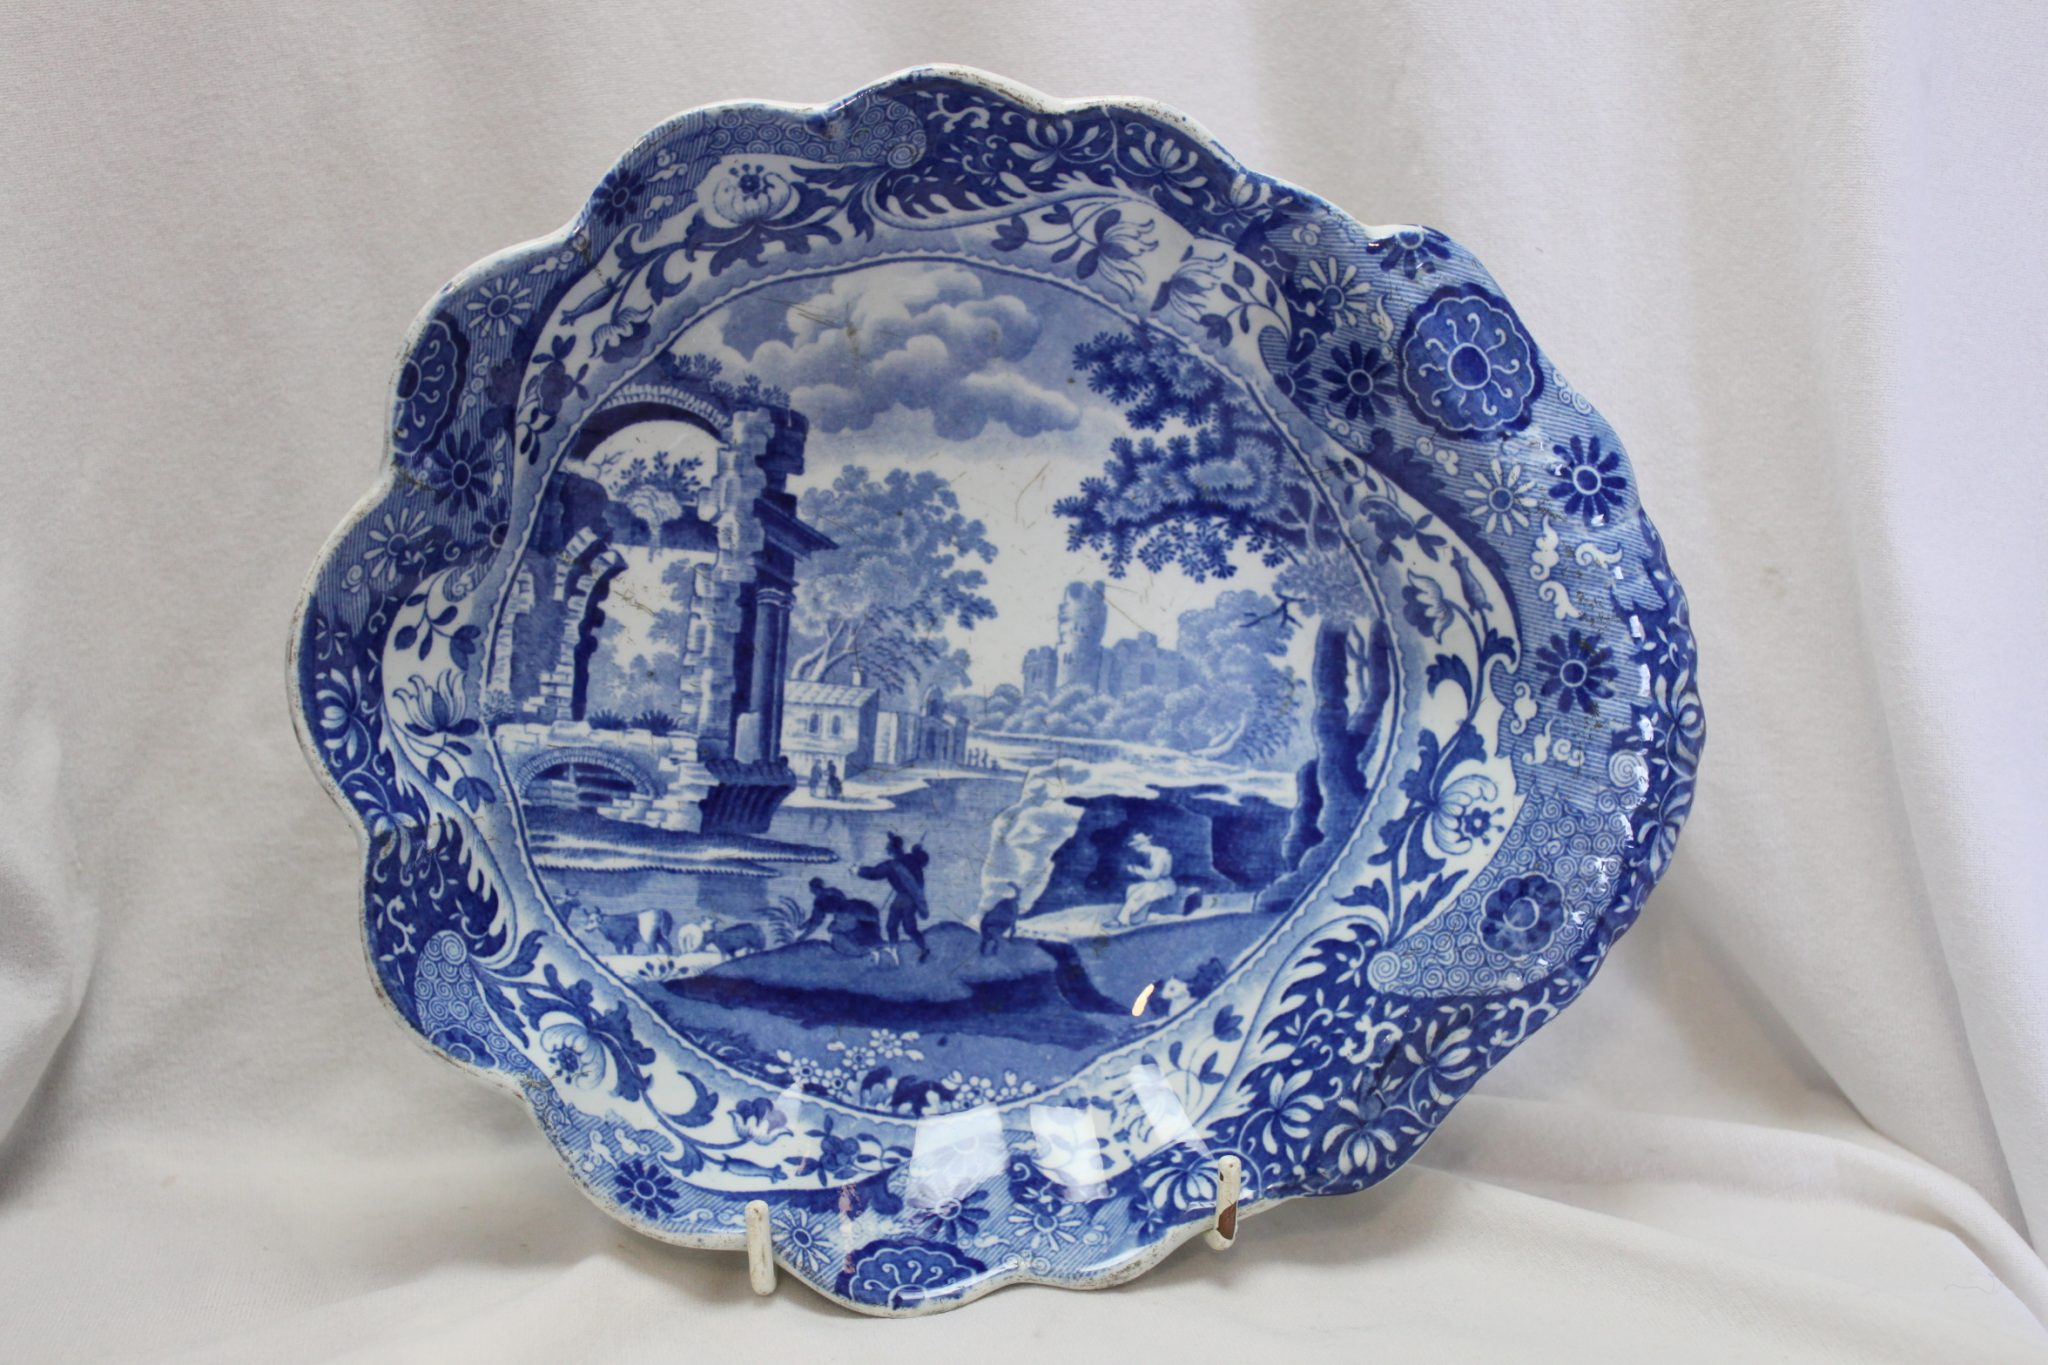 Spode dessert bowl decorated with Blue Italian pattern